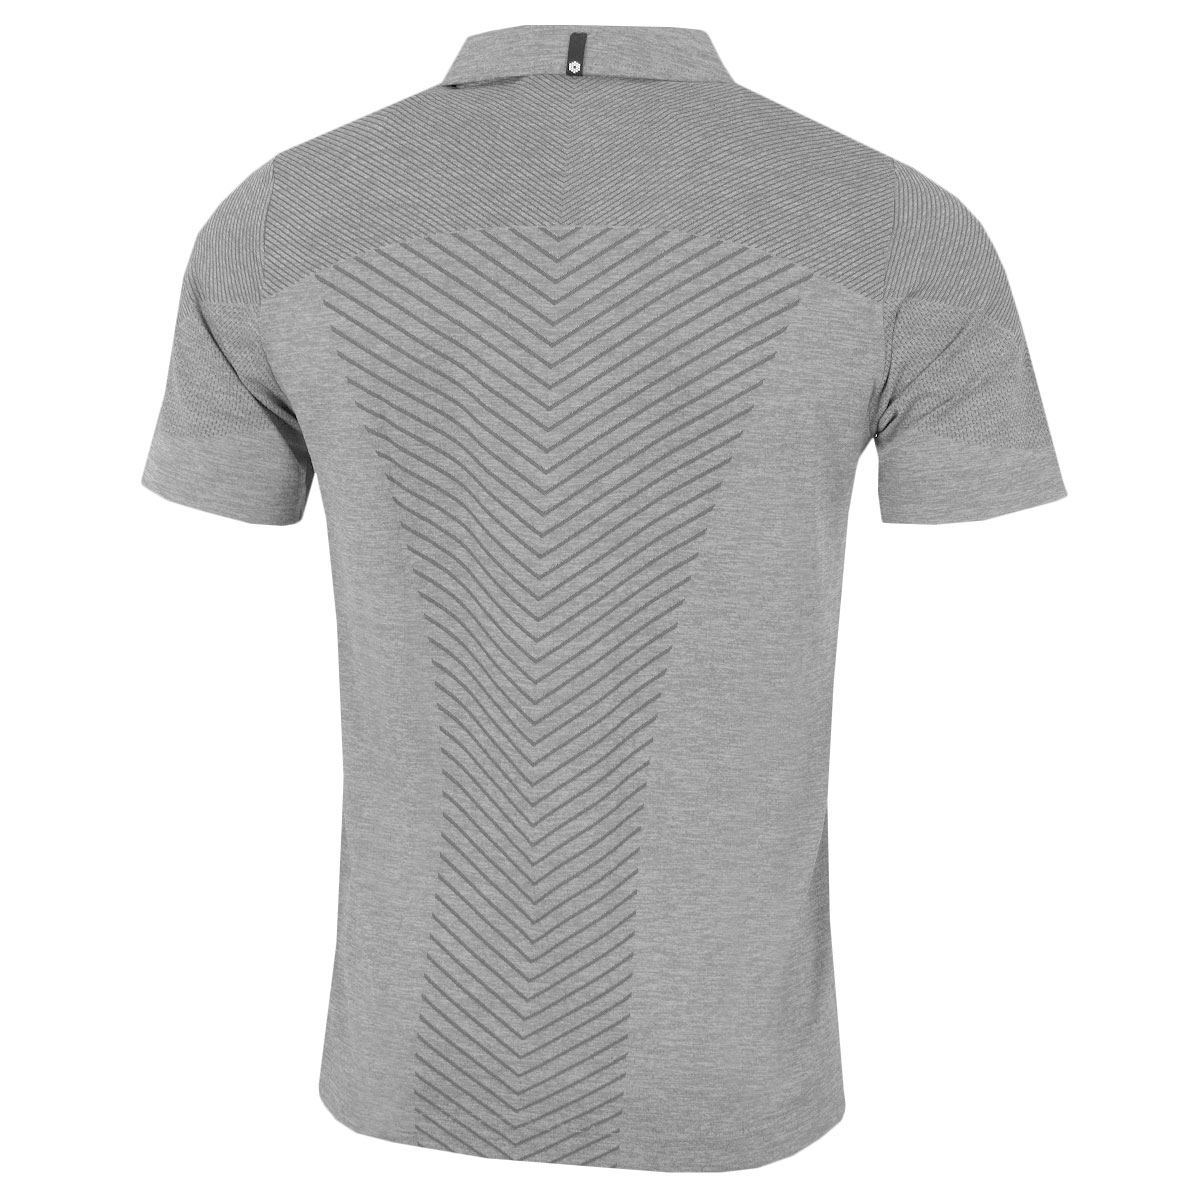 Puma-Golf-Mens-Evoknit-Seamless-DryCell-Moisture-Wicking-Polo-Shirt-46-OFF-RRP thumbnail 9